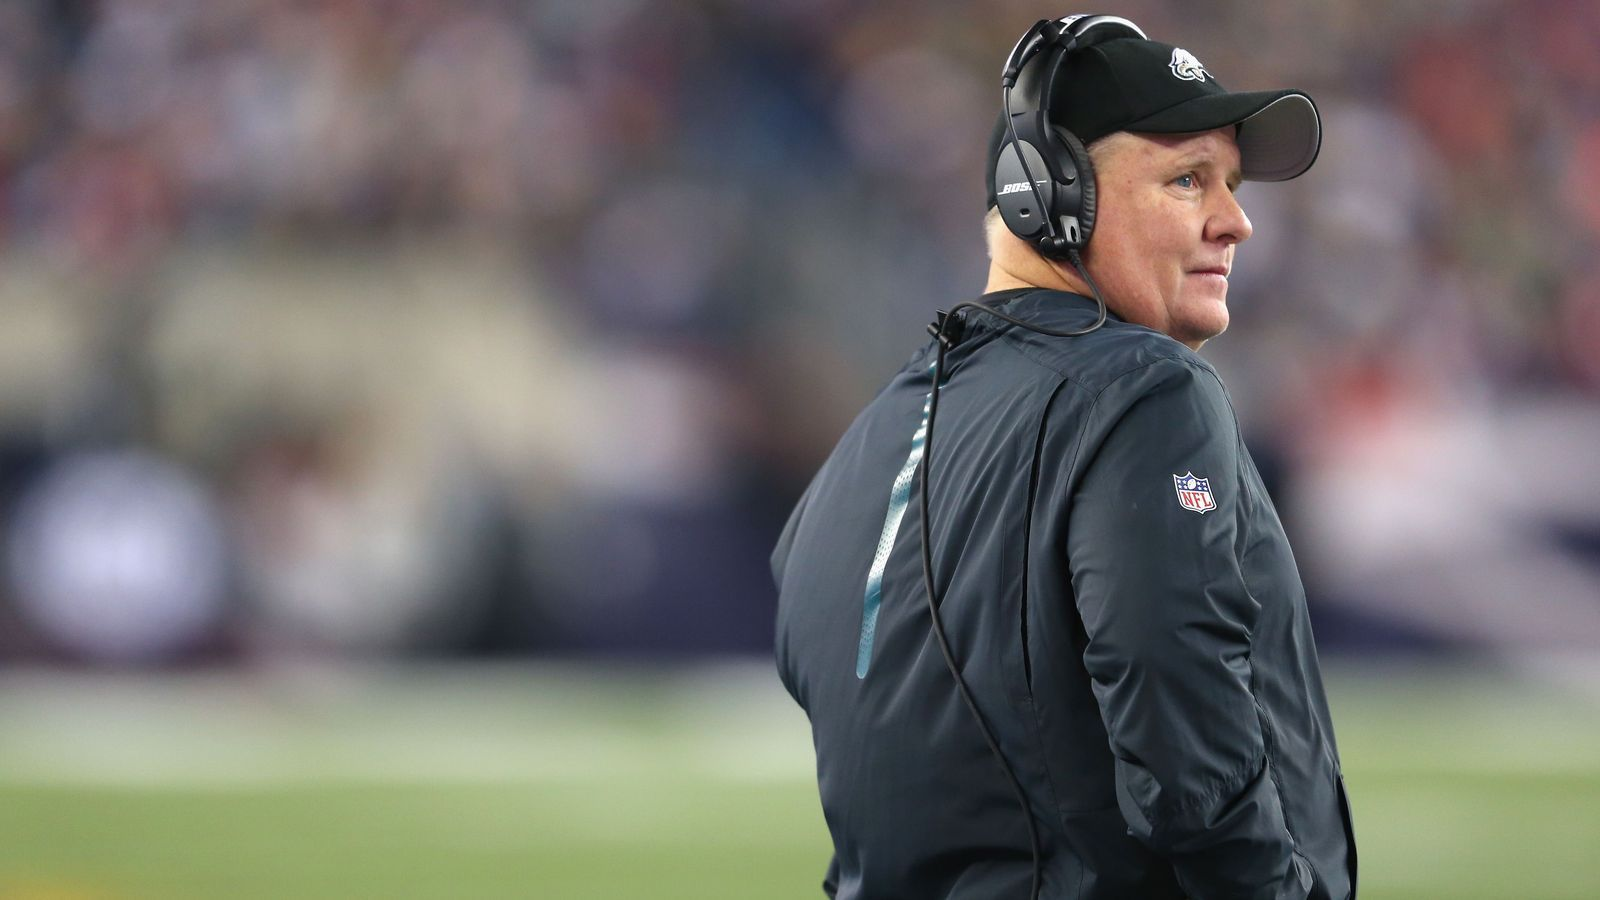 Do you approve of the eagles decision to release chip